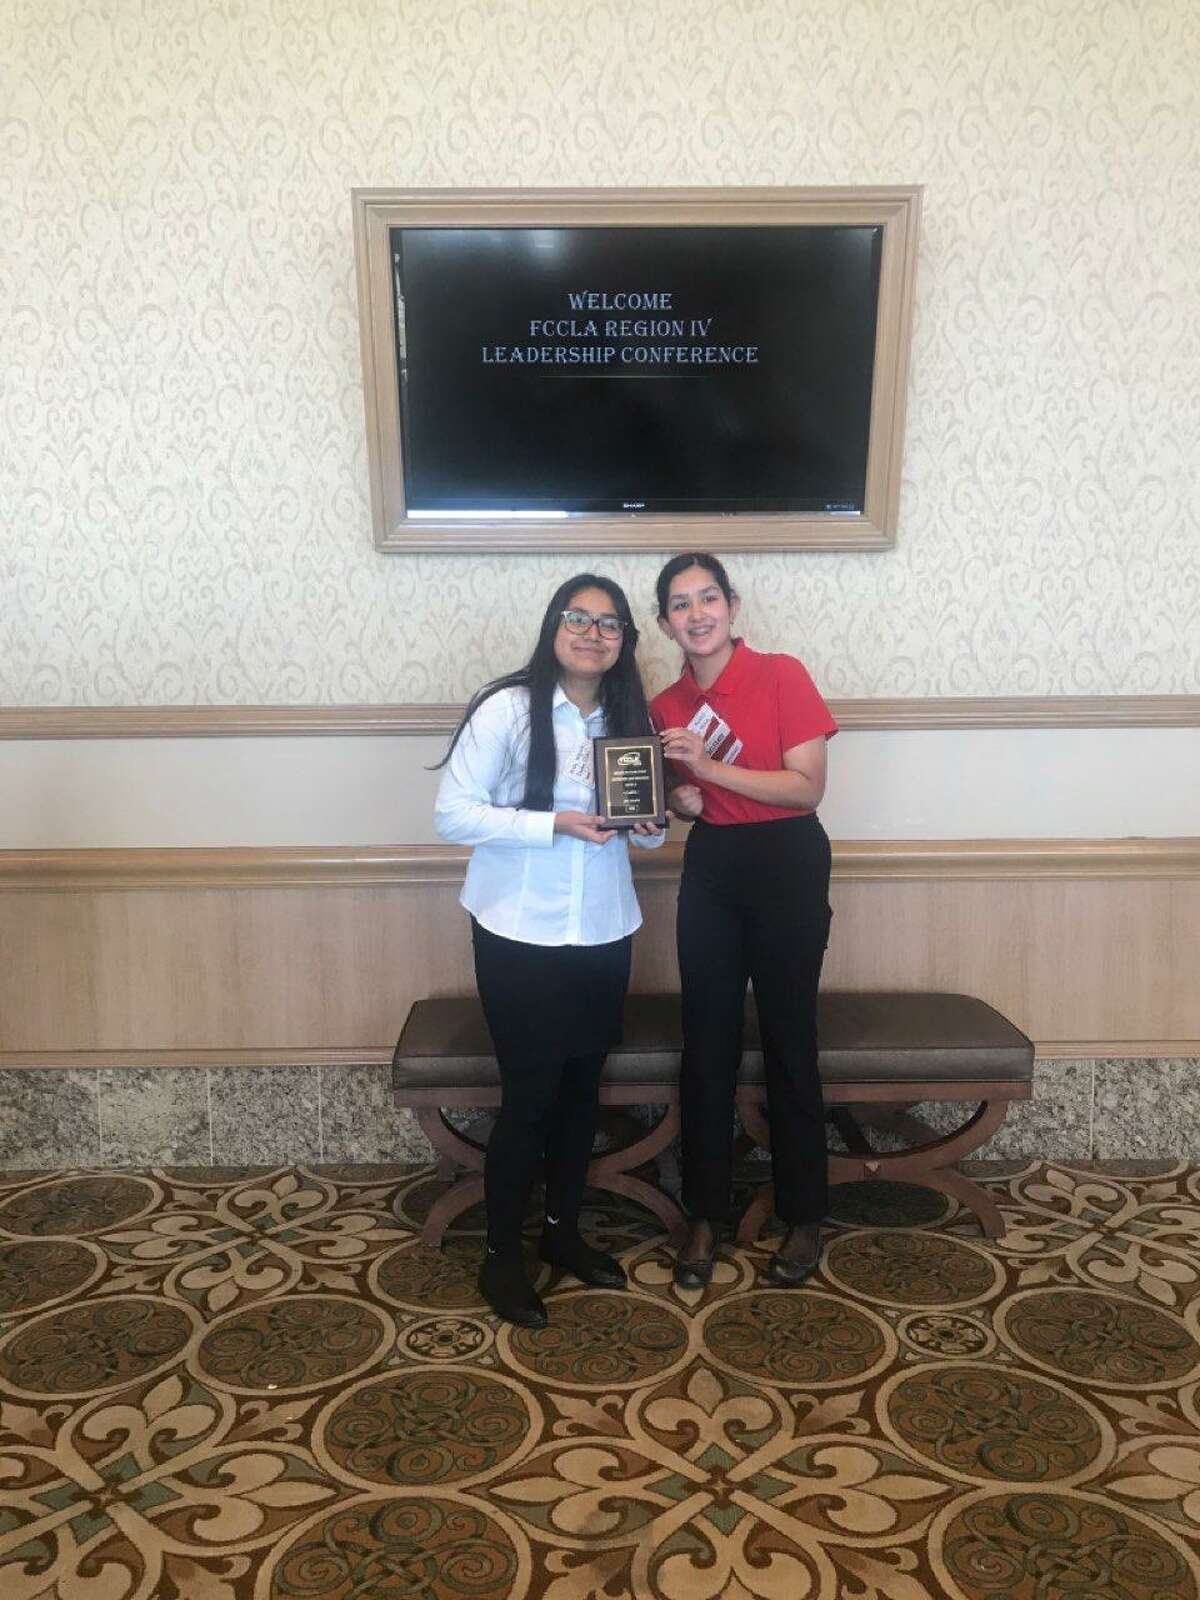 Arely Vazquez and Nurpur Purohit placed fourth in state on the Nutrition and Wellness team.